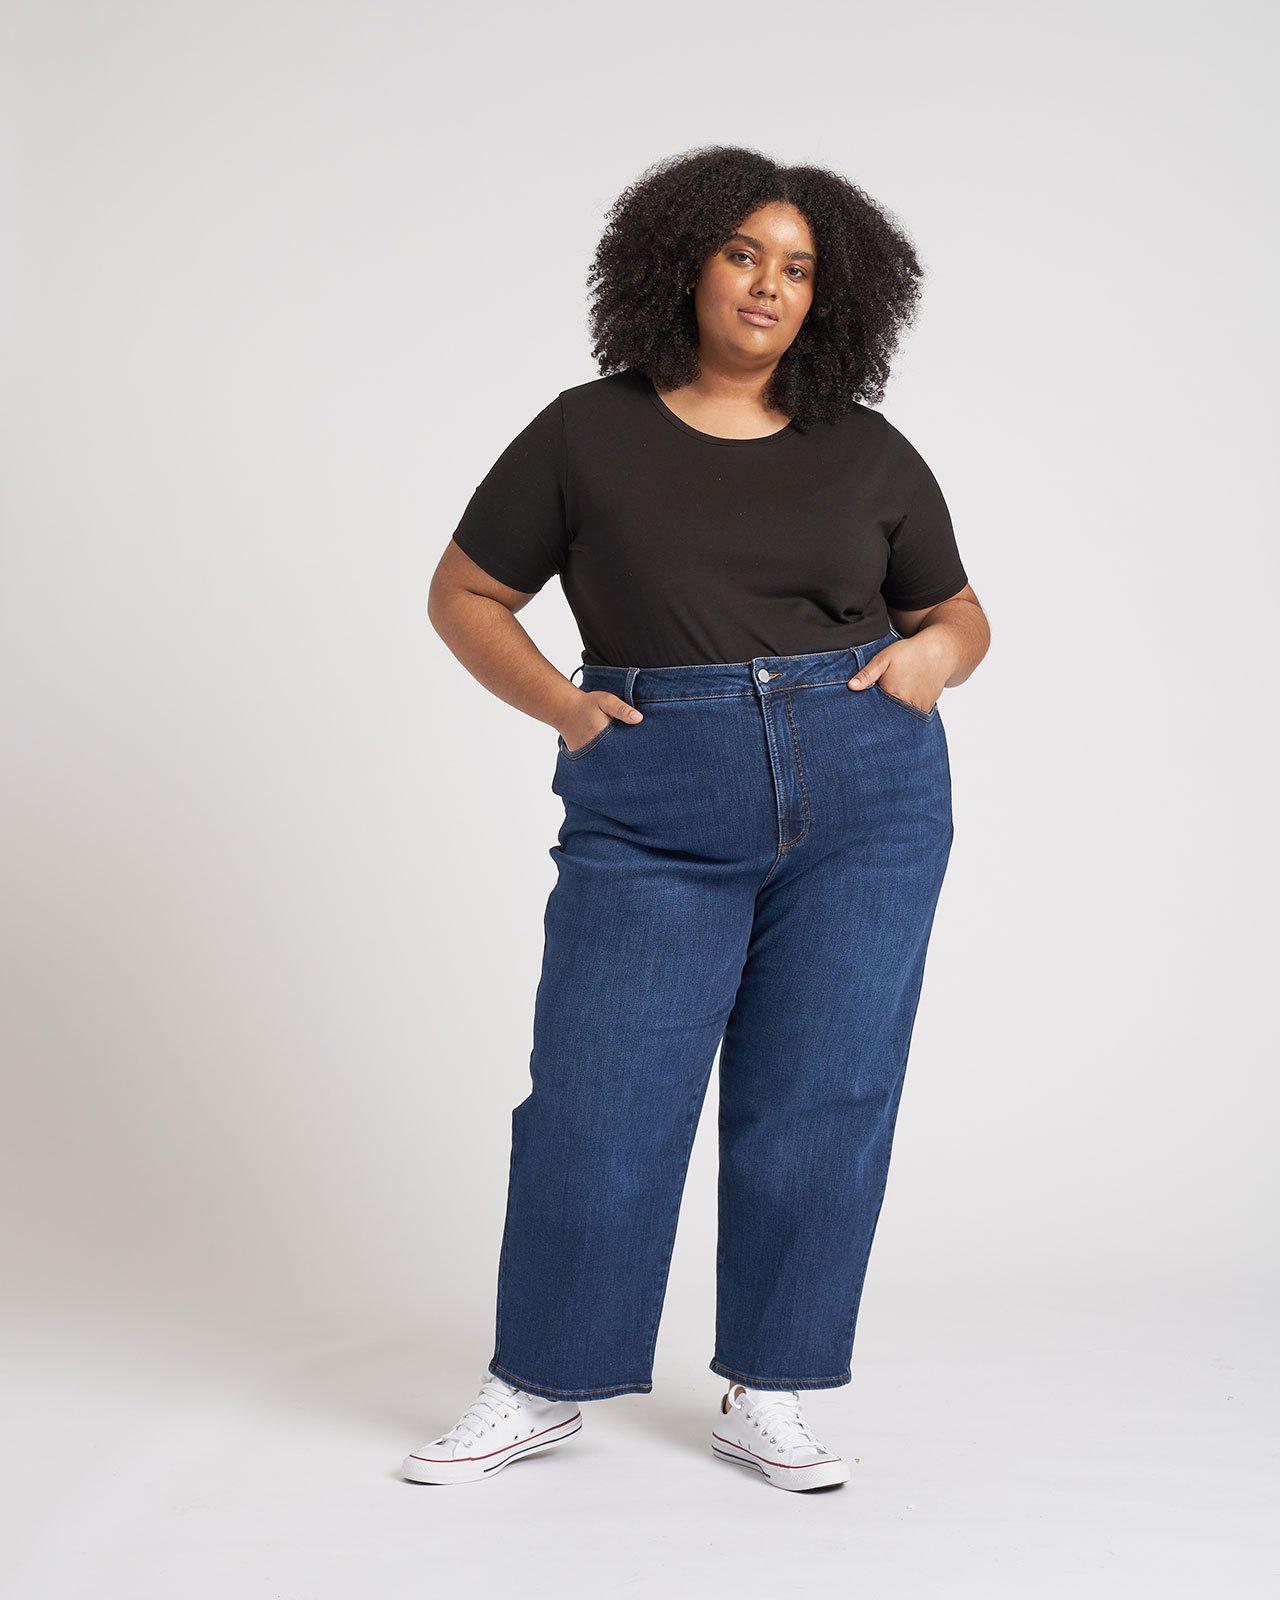 Donna High Rise Curve Straight Leg Jeans 27 Inch